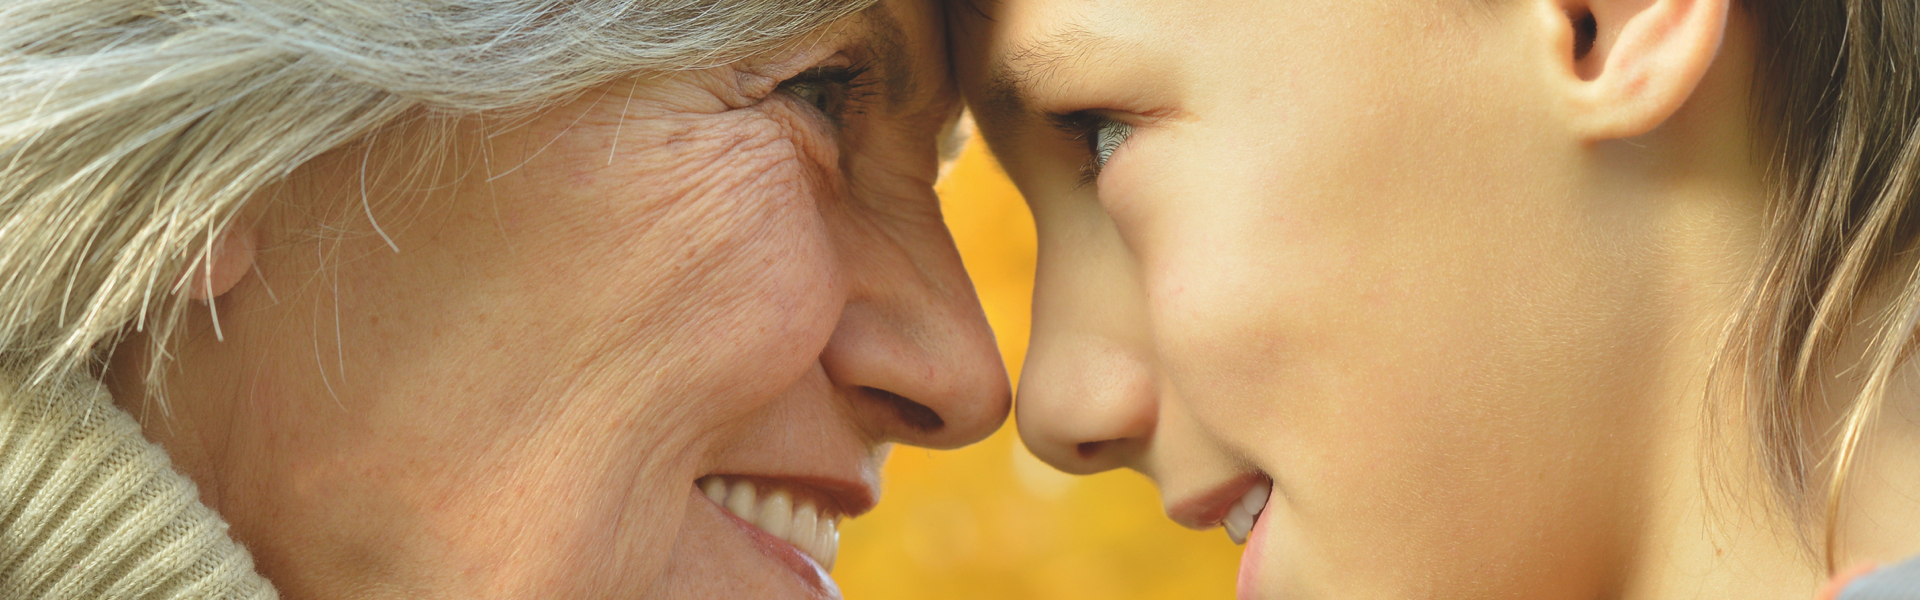 Older women and child looking into each others eyes with foreheads pressed together